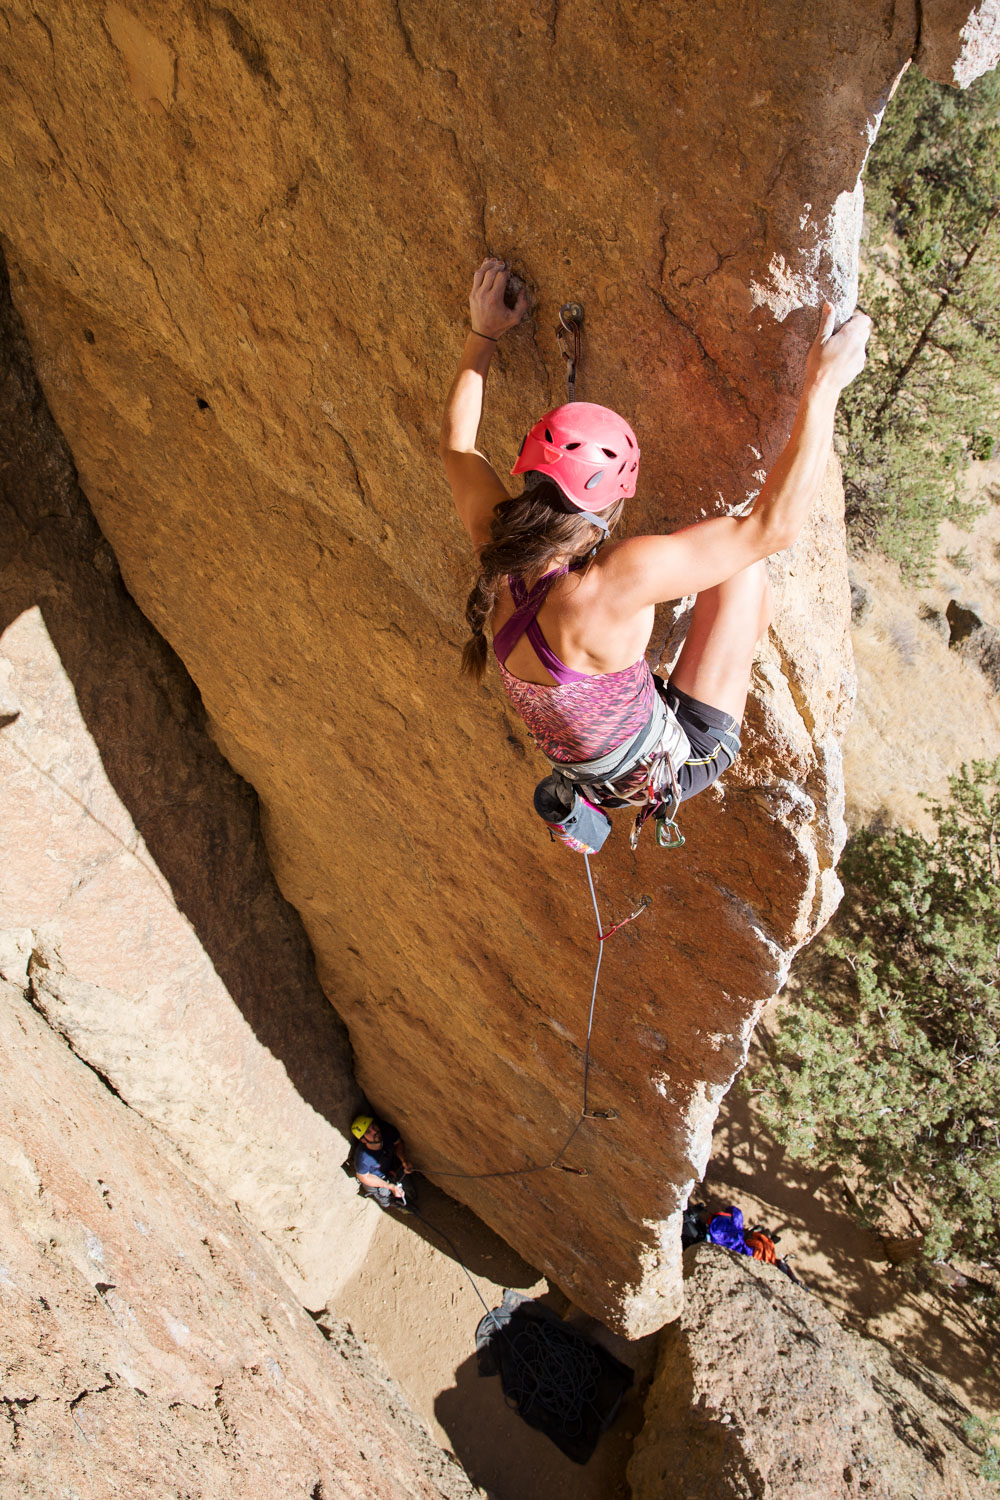 Lisa Chulich high on the wall. Smith Rock, OR